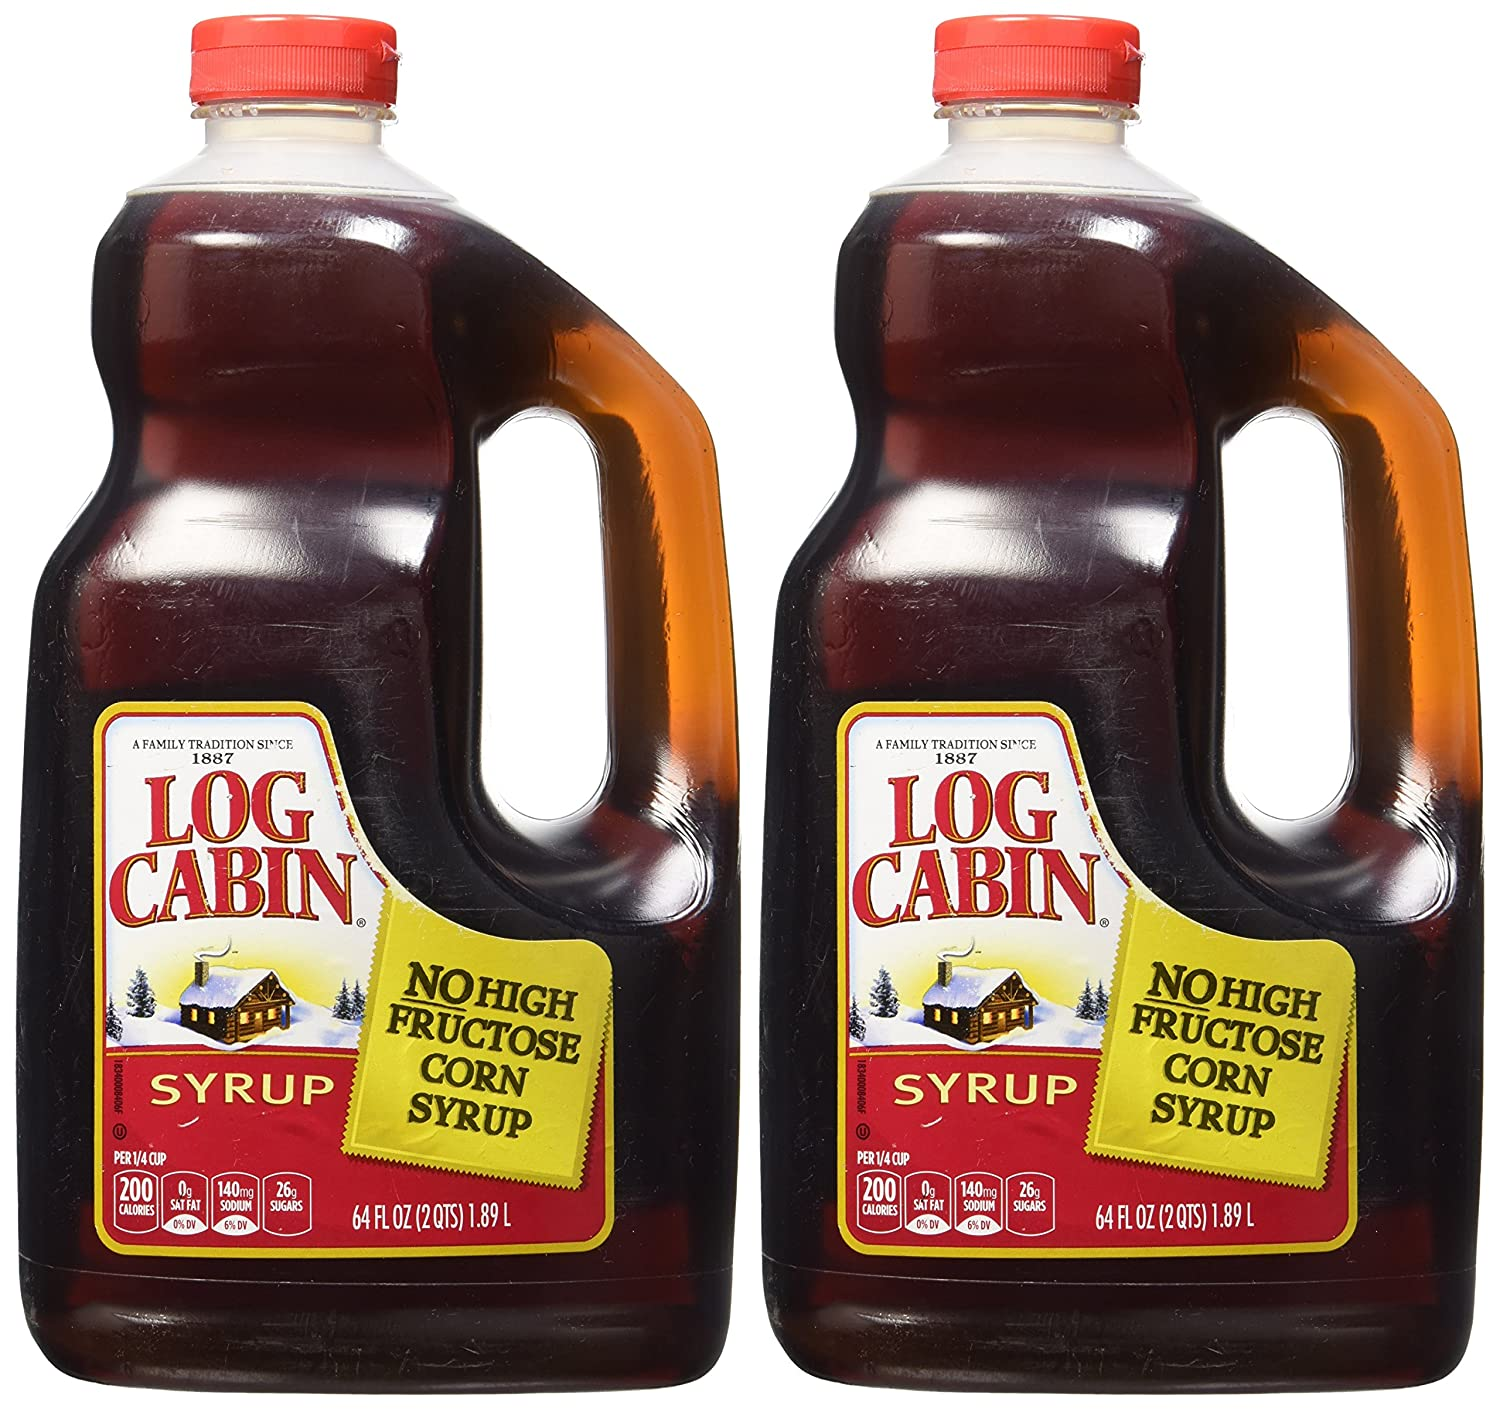 Log Cabin Original Syrup, 128 Ounces (Pack of 2)